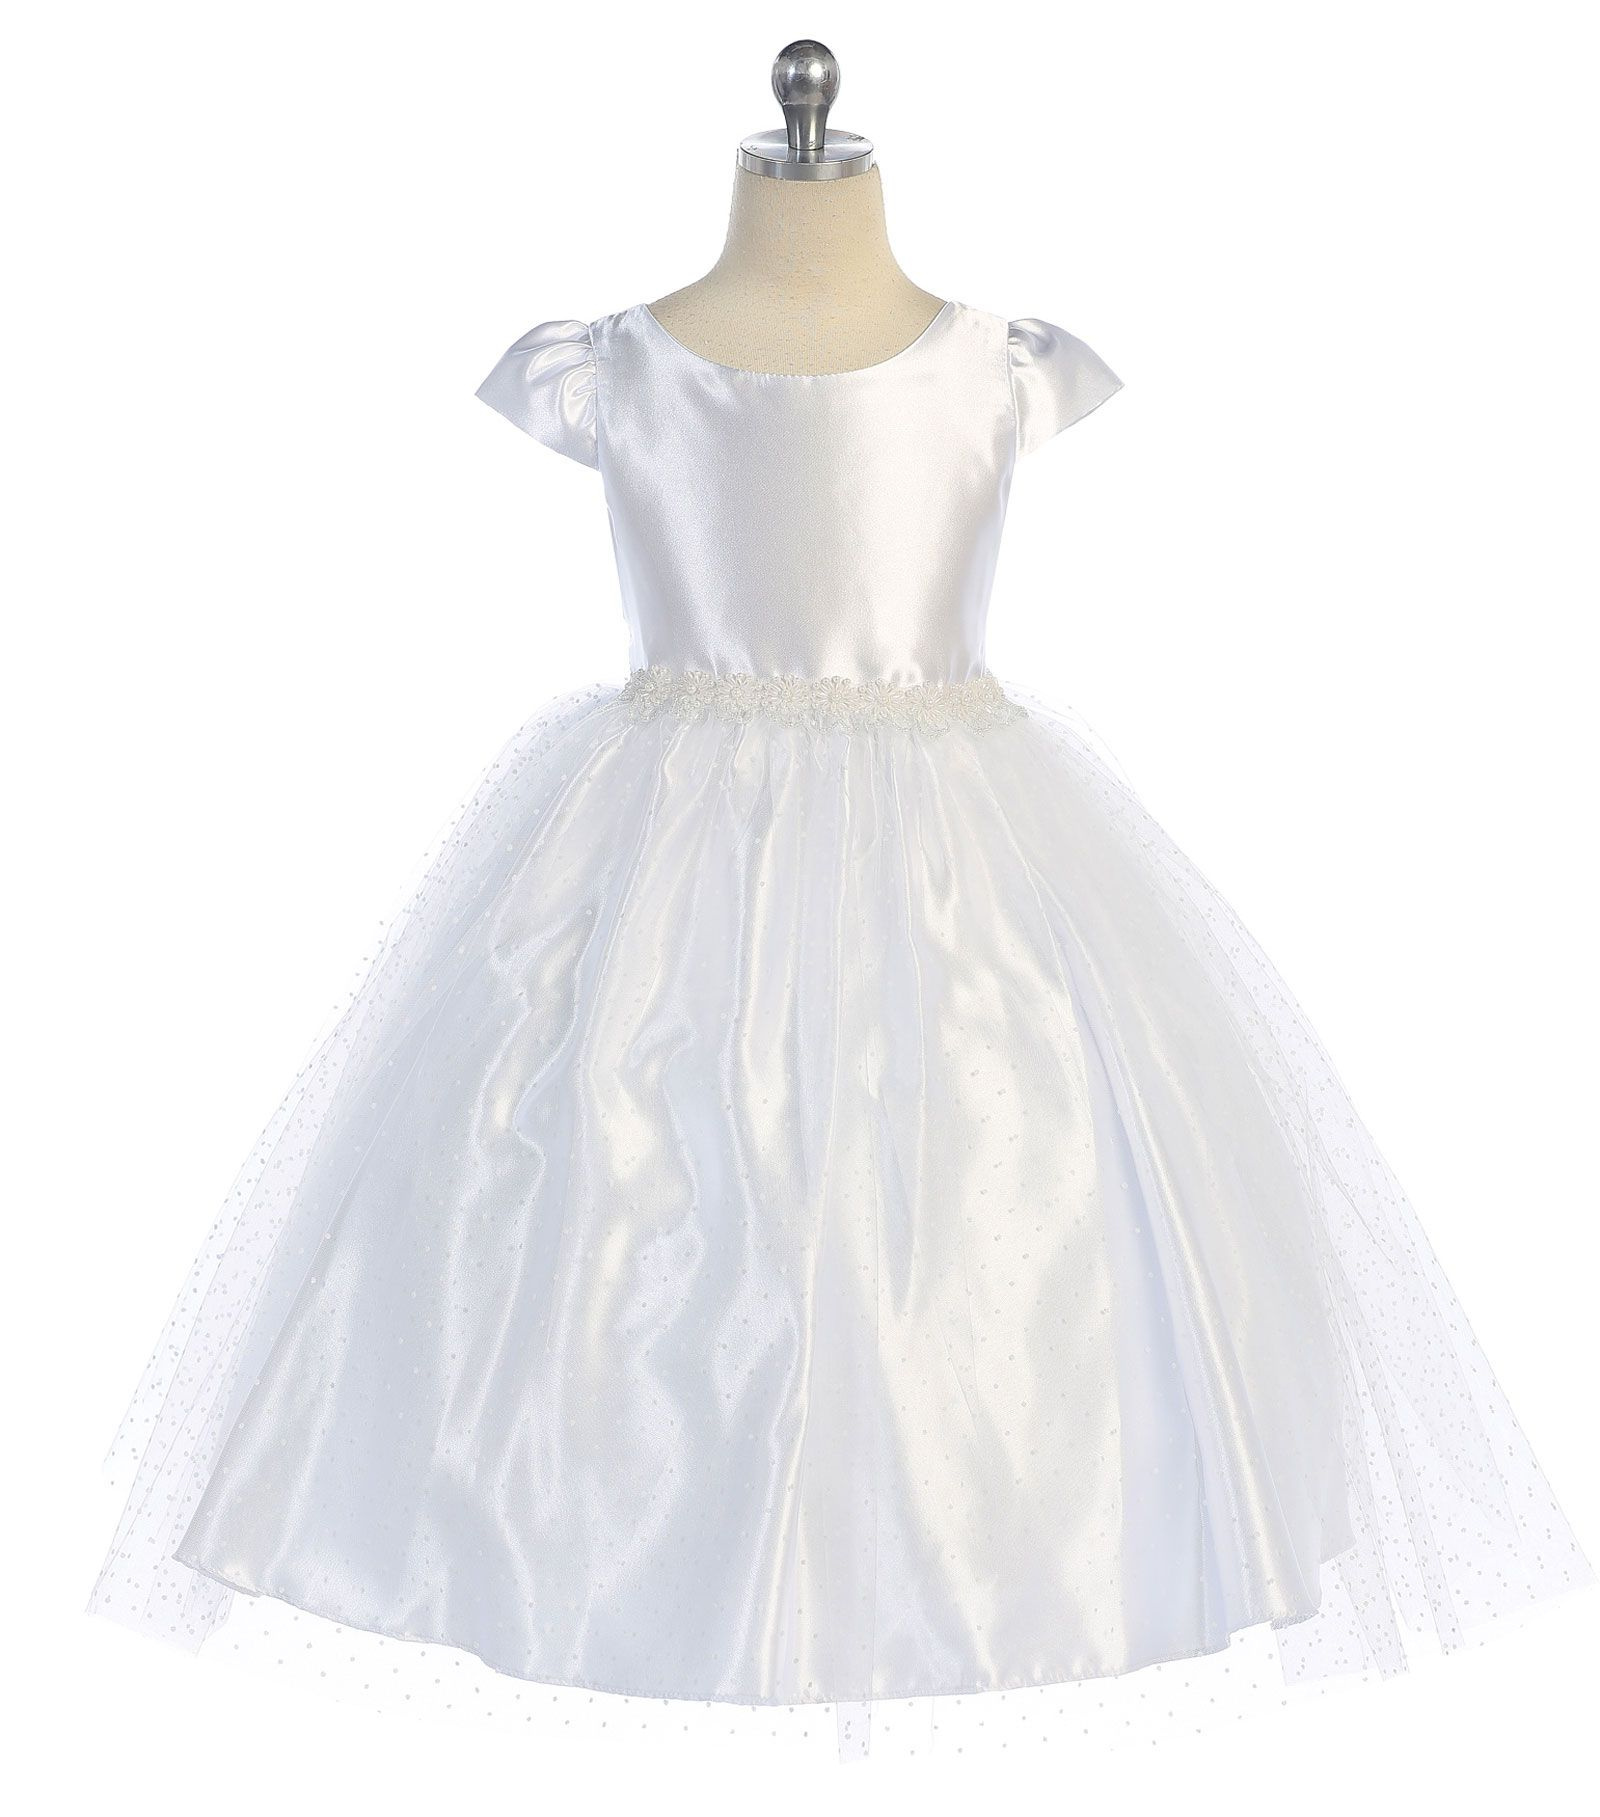 Beautiful cap sleeved satin and tulle dress that is classic ballerina style.If you look closely you will notice the beautiful polka-dot pattern throughout the skirt. Intricate floral and pearl designs align the waistband. The dress is fully lined for complete coverage to ensure that your princess stays comfortable.Baby sizes include matching headband. Sash is attached at side seams. This dress is made from a designer label that upholds to the highest in quality and super cute style.